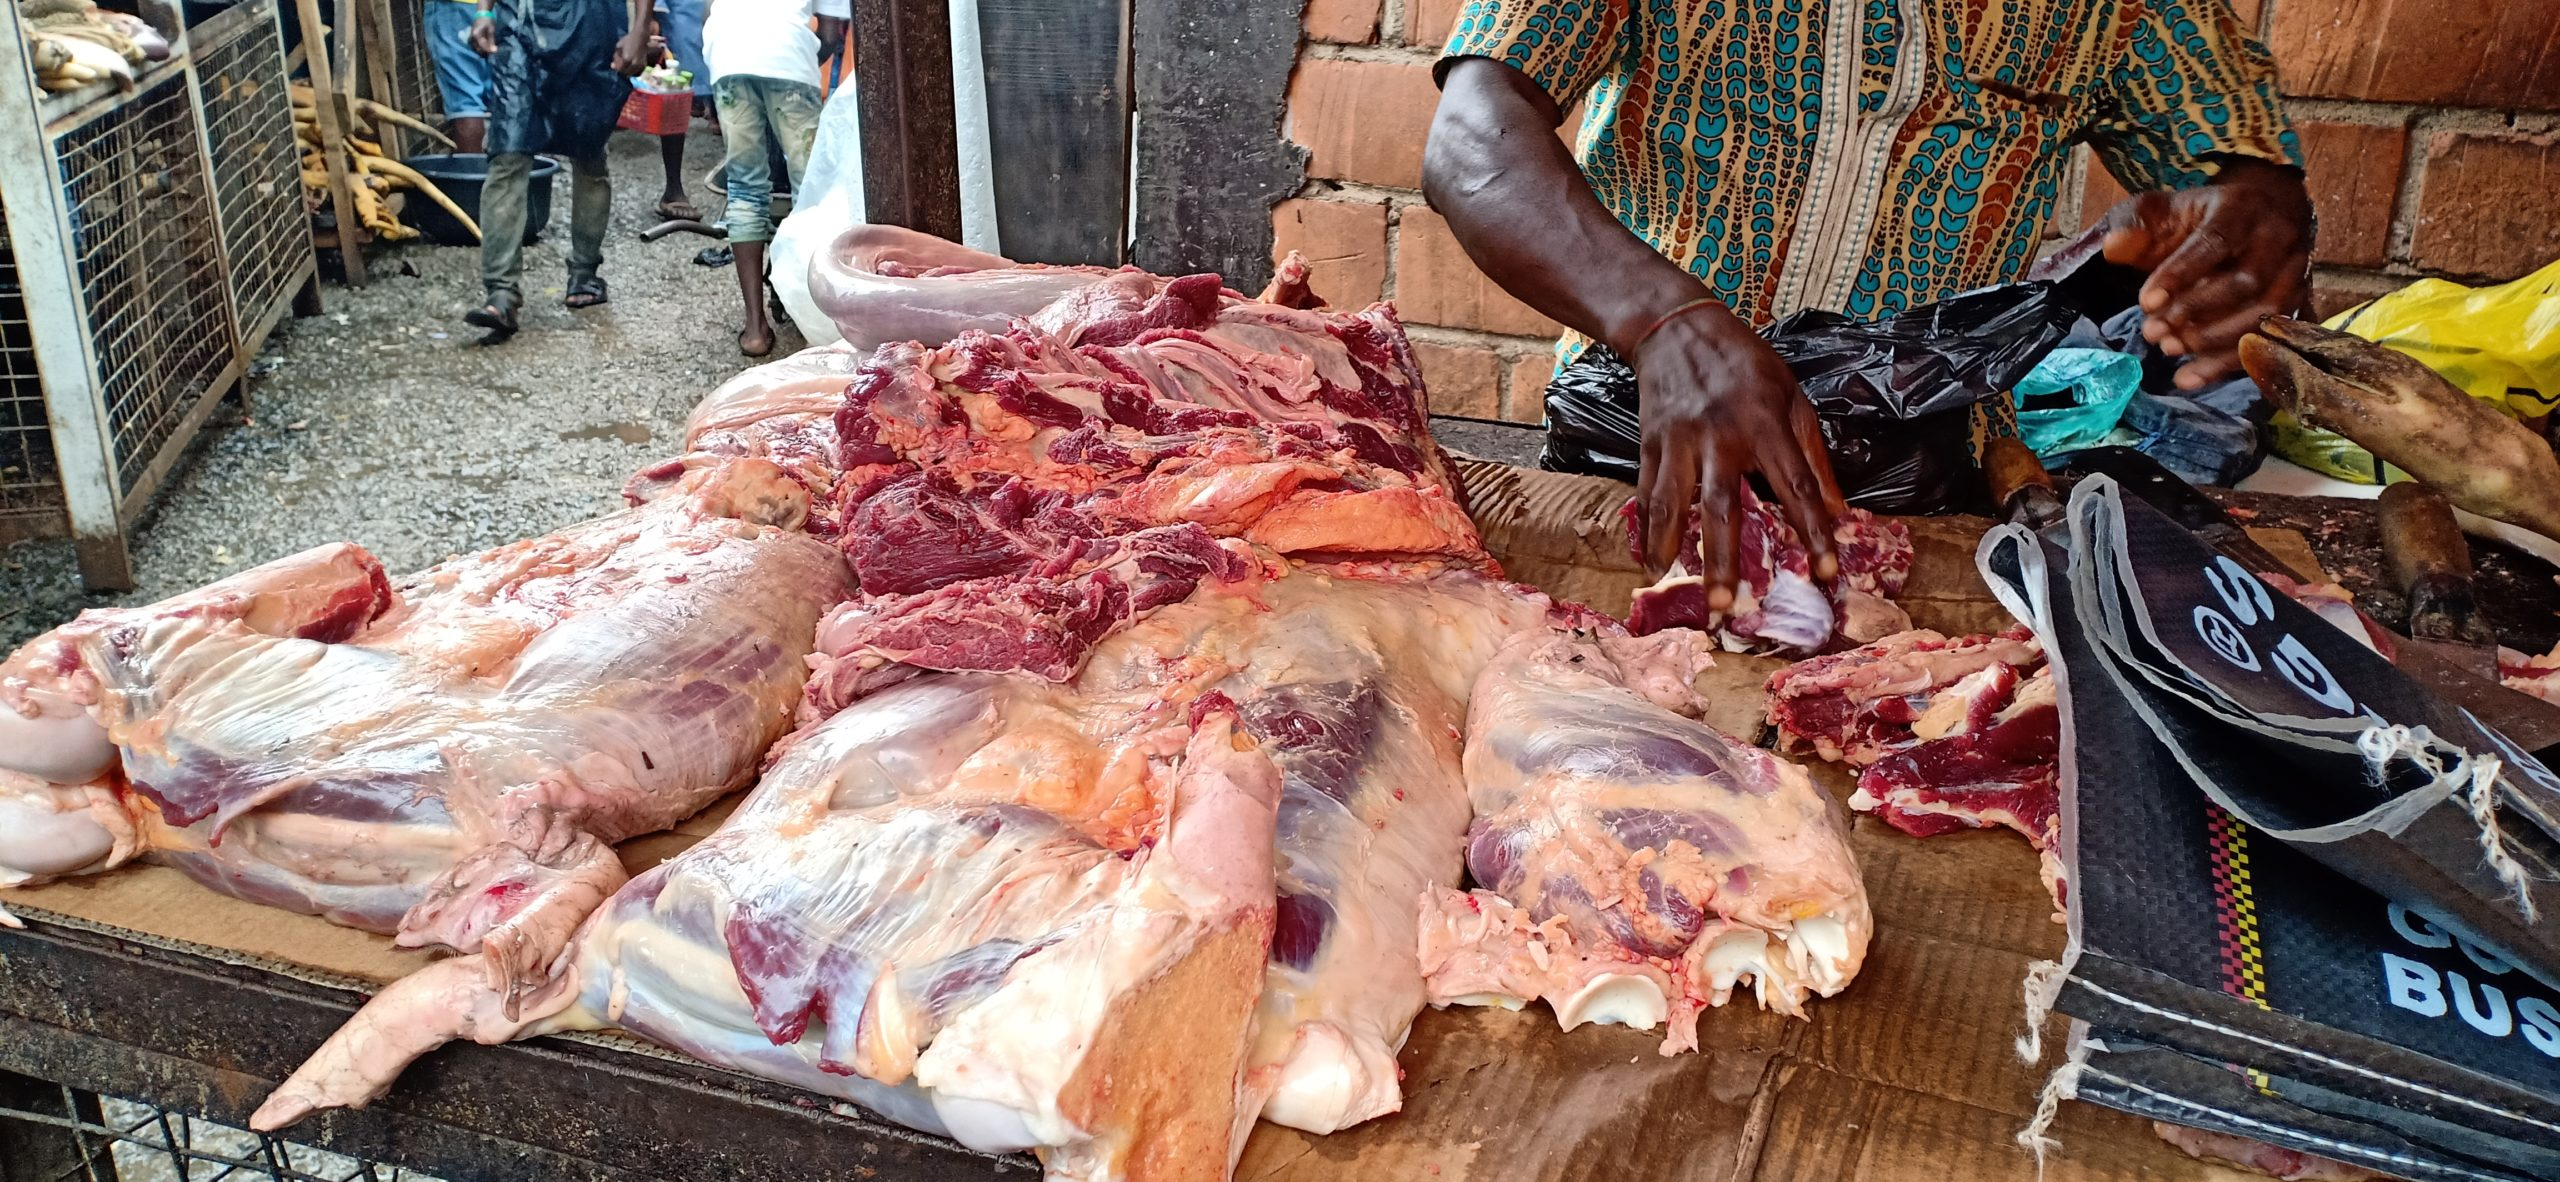 The Rivers State Government has said from October 1 2020, it would begin the closure of all abbatoirs in the state that do not meet the required sanitary standard in line with laws of the state. The state commissioner for Agriculture Fred Kpakol, who disclosed this yesterday in Port Harcourt, called on those operating such slaughter houses to desist from the illegal act. He urged slaughter operators who are yet to register with the ministry to do so and obtain their licenses.